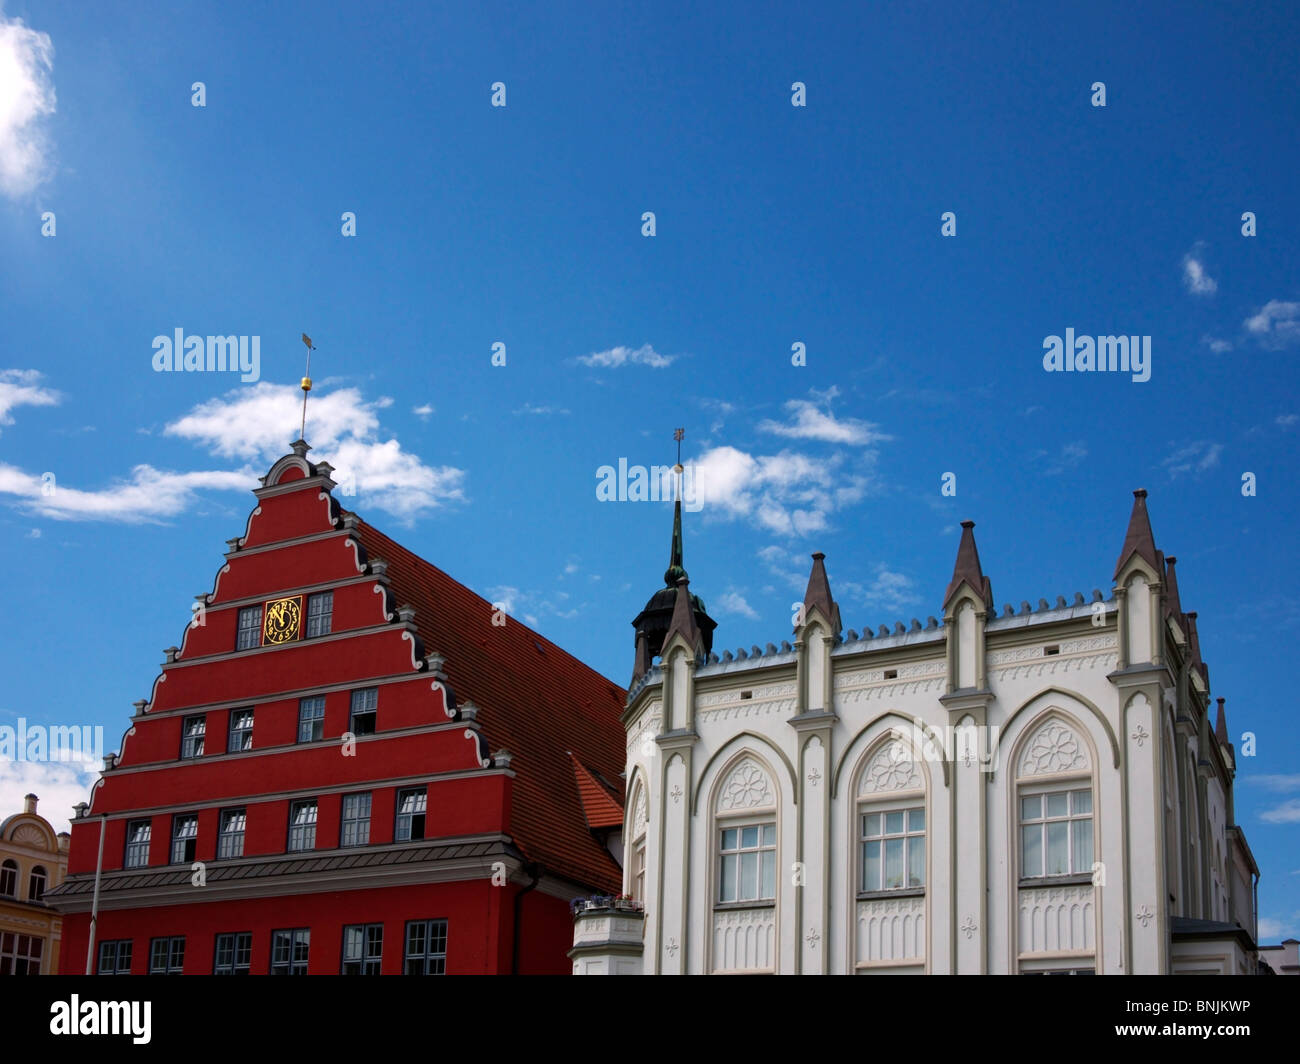 Central market place, Greifswald - Stock Image